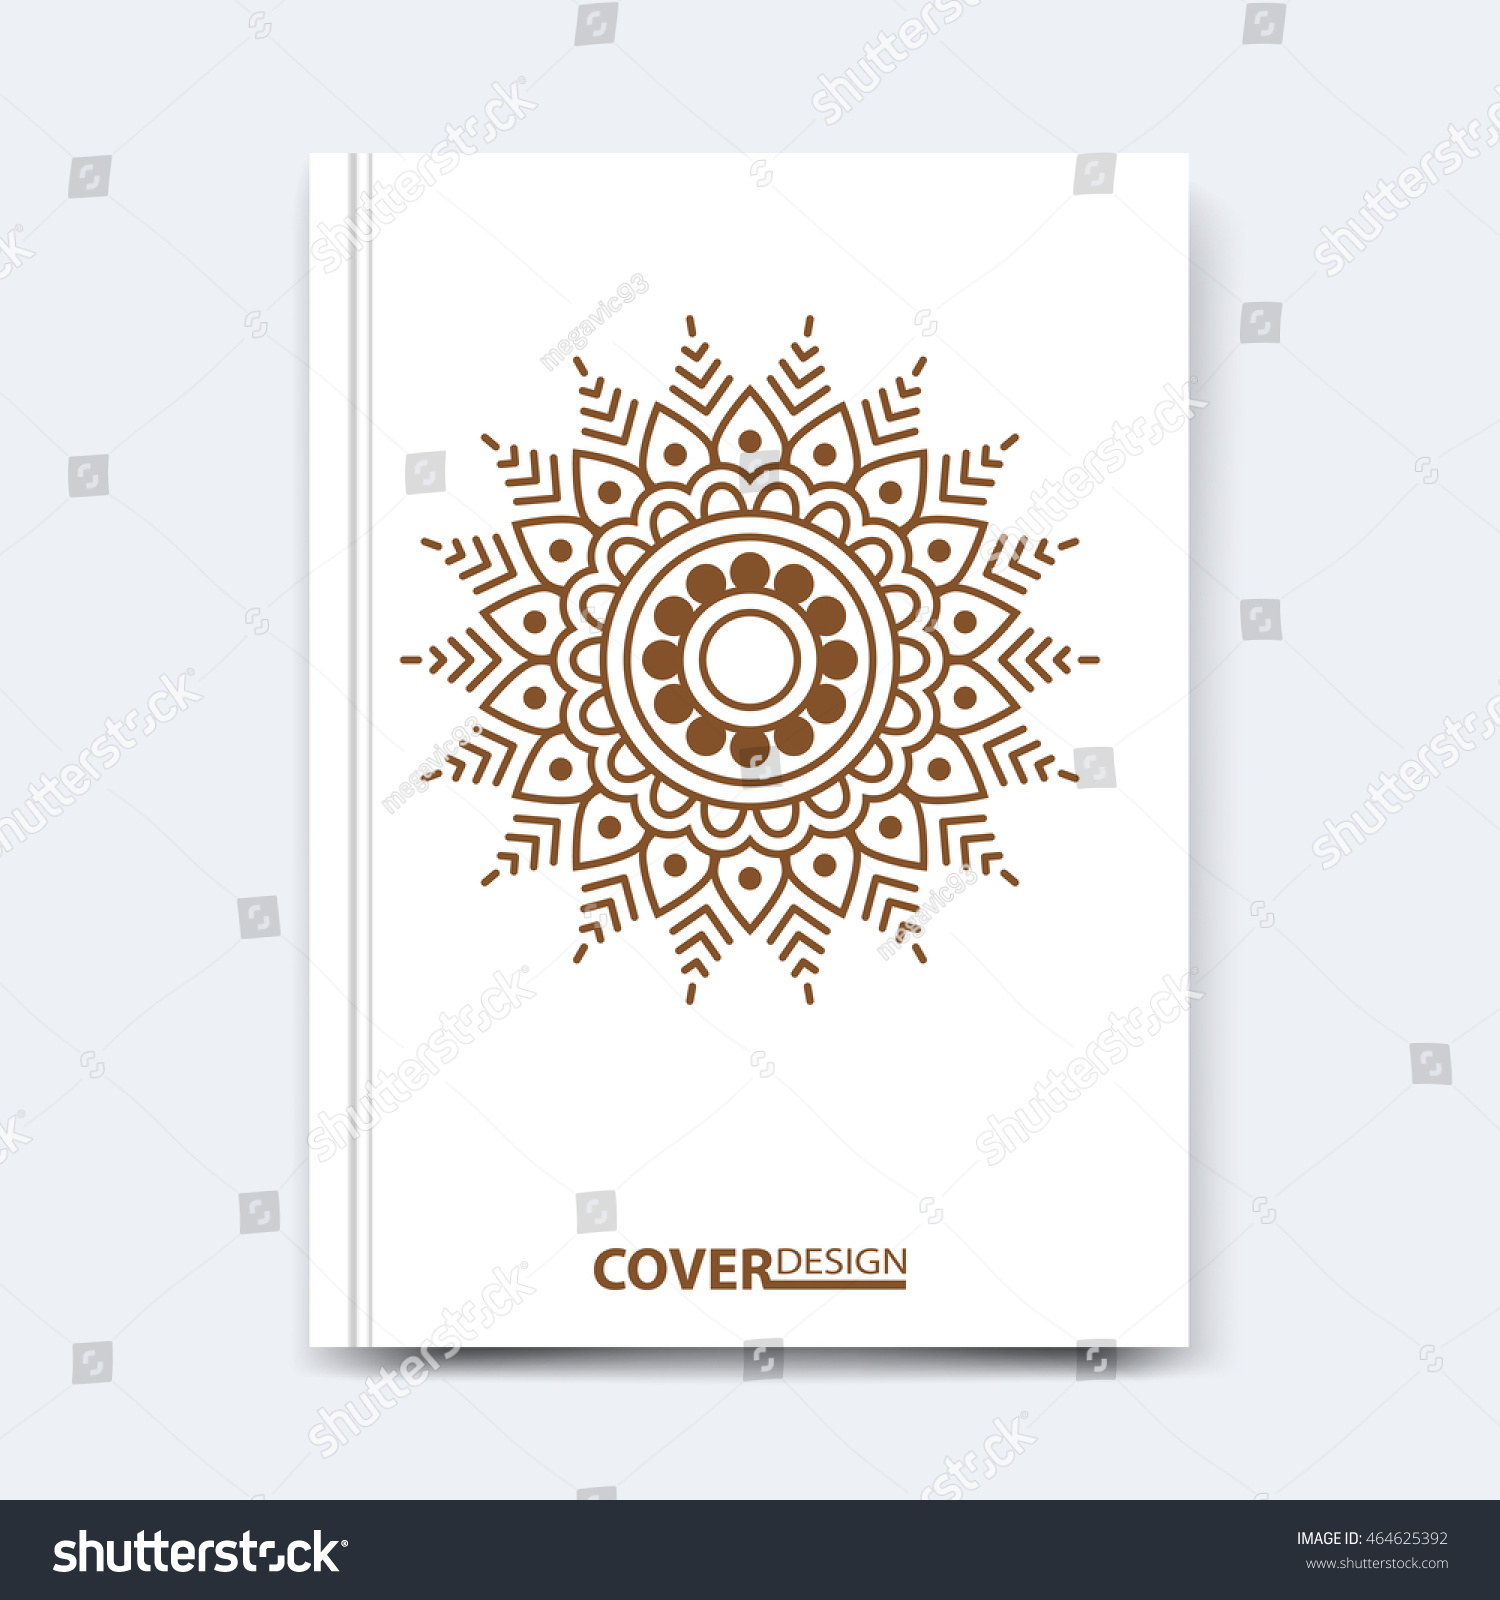 abstract vector n floral or nt ethnic stock vector abstract vector n floral or nt ethnic mandala design for cover poster banner